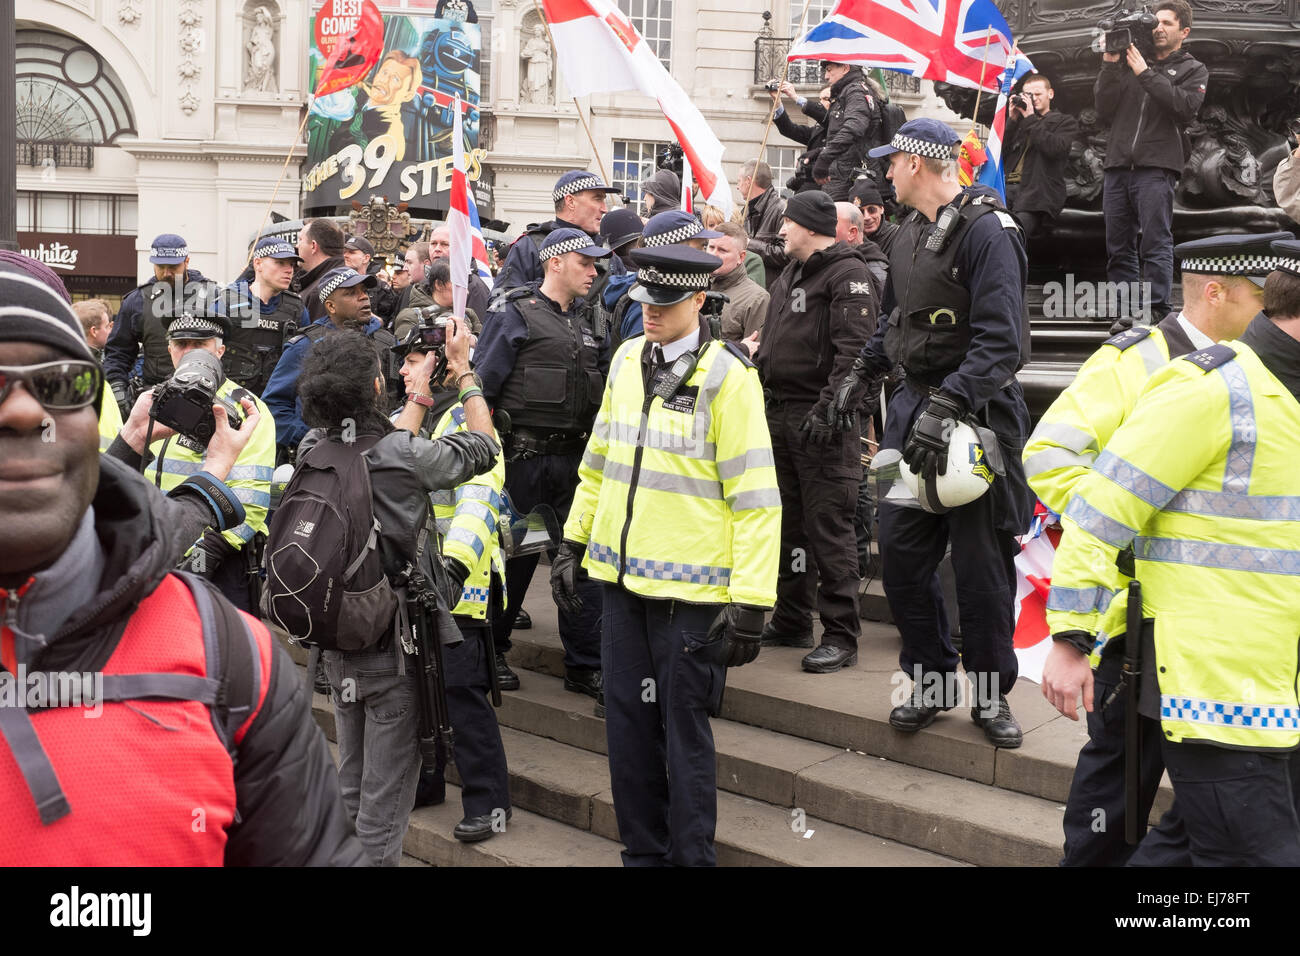 An Anti-racism Demo in London, 21st March 2015. Paul Golding of Britain First pictured on the steps of Eros at Piccadilly Stock Photo